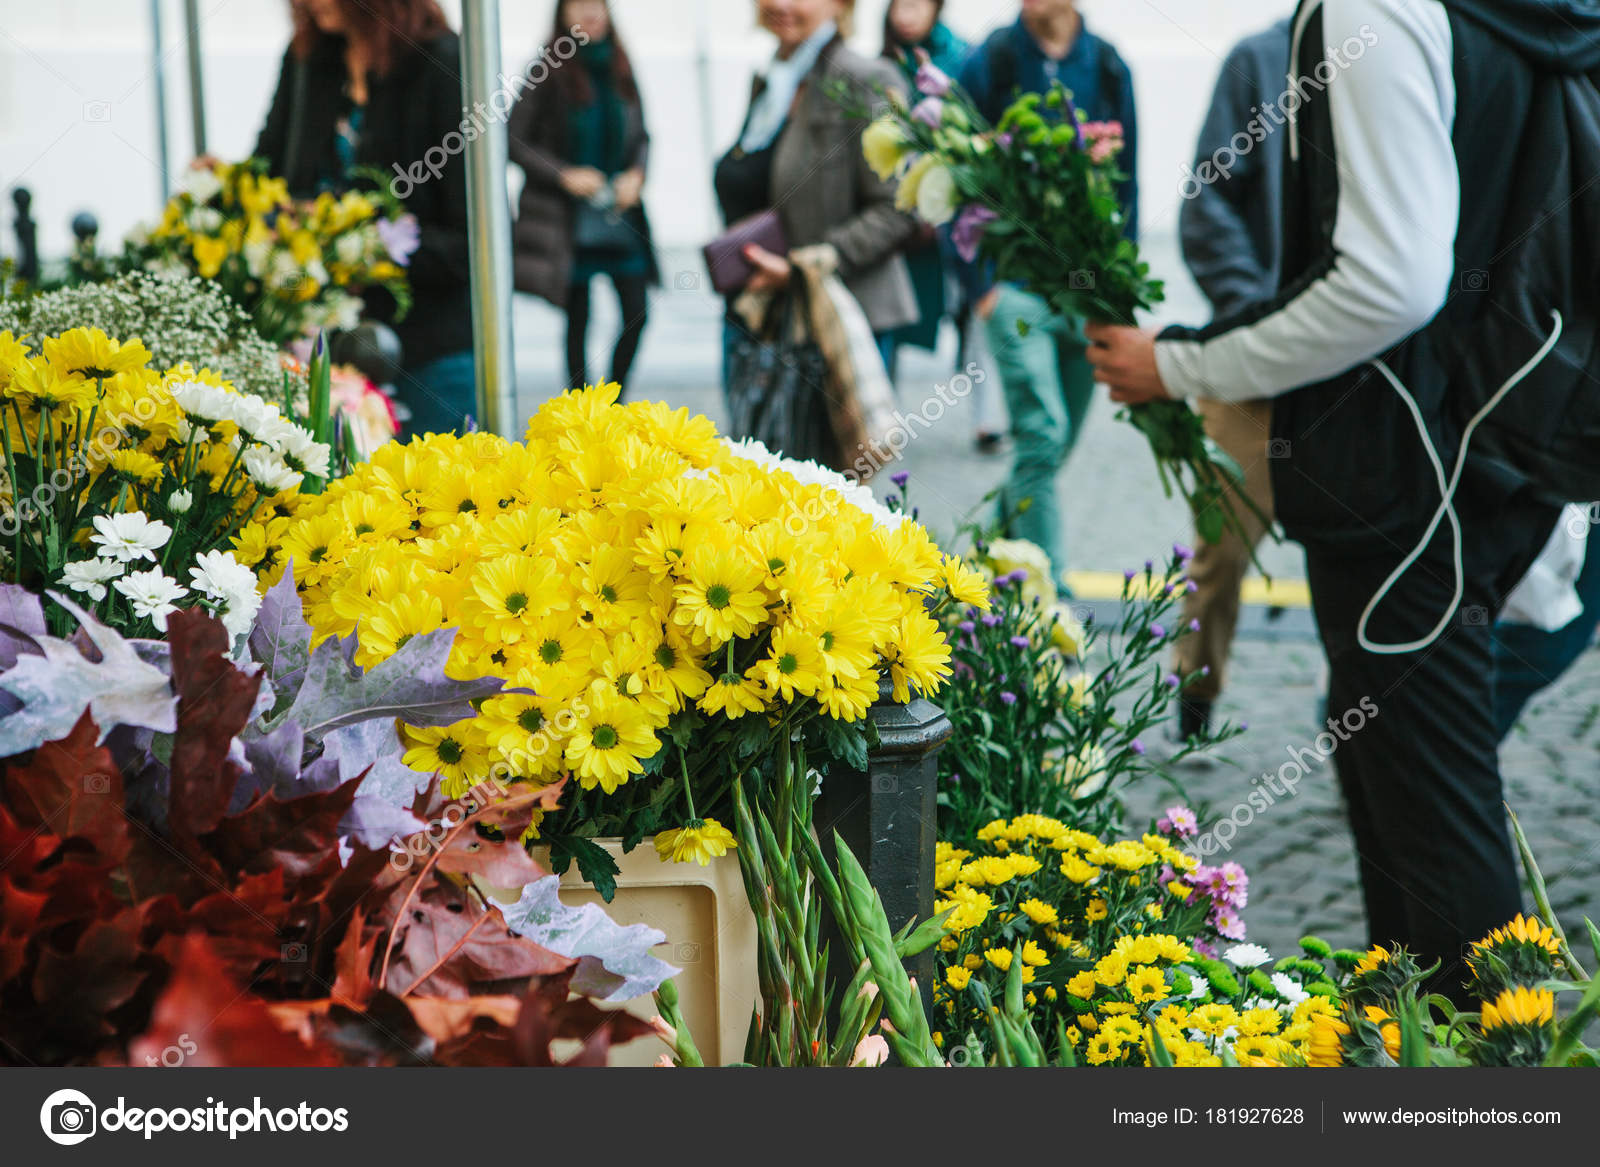 Street Flower Shop In The Foreground There Are Beautiful Yellow And